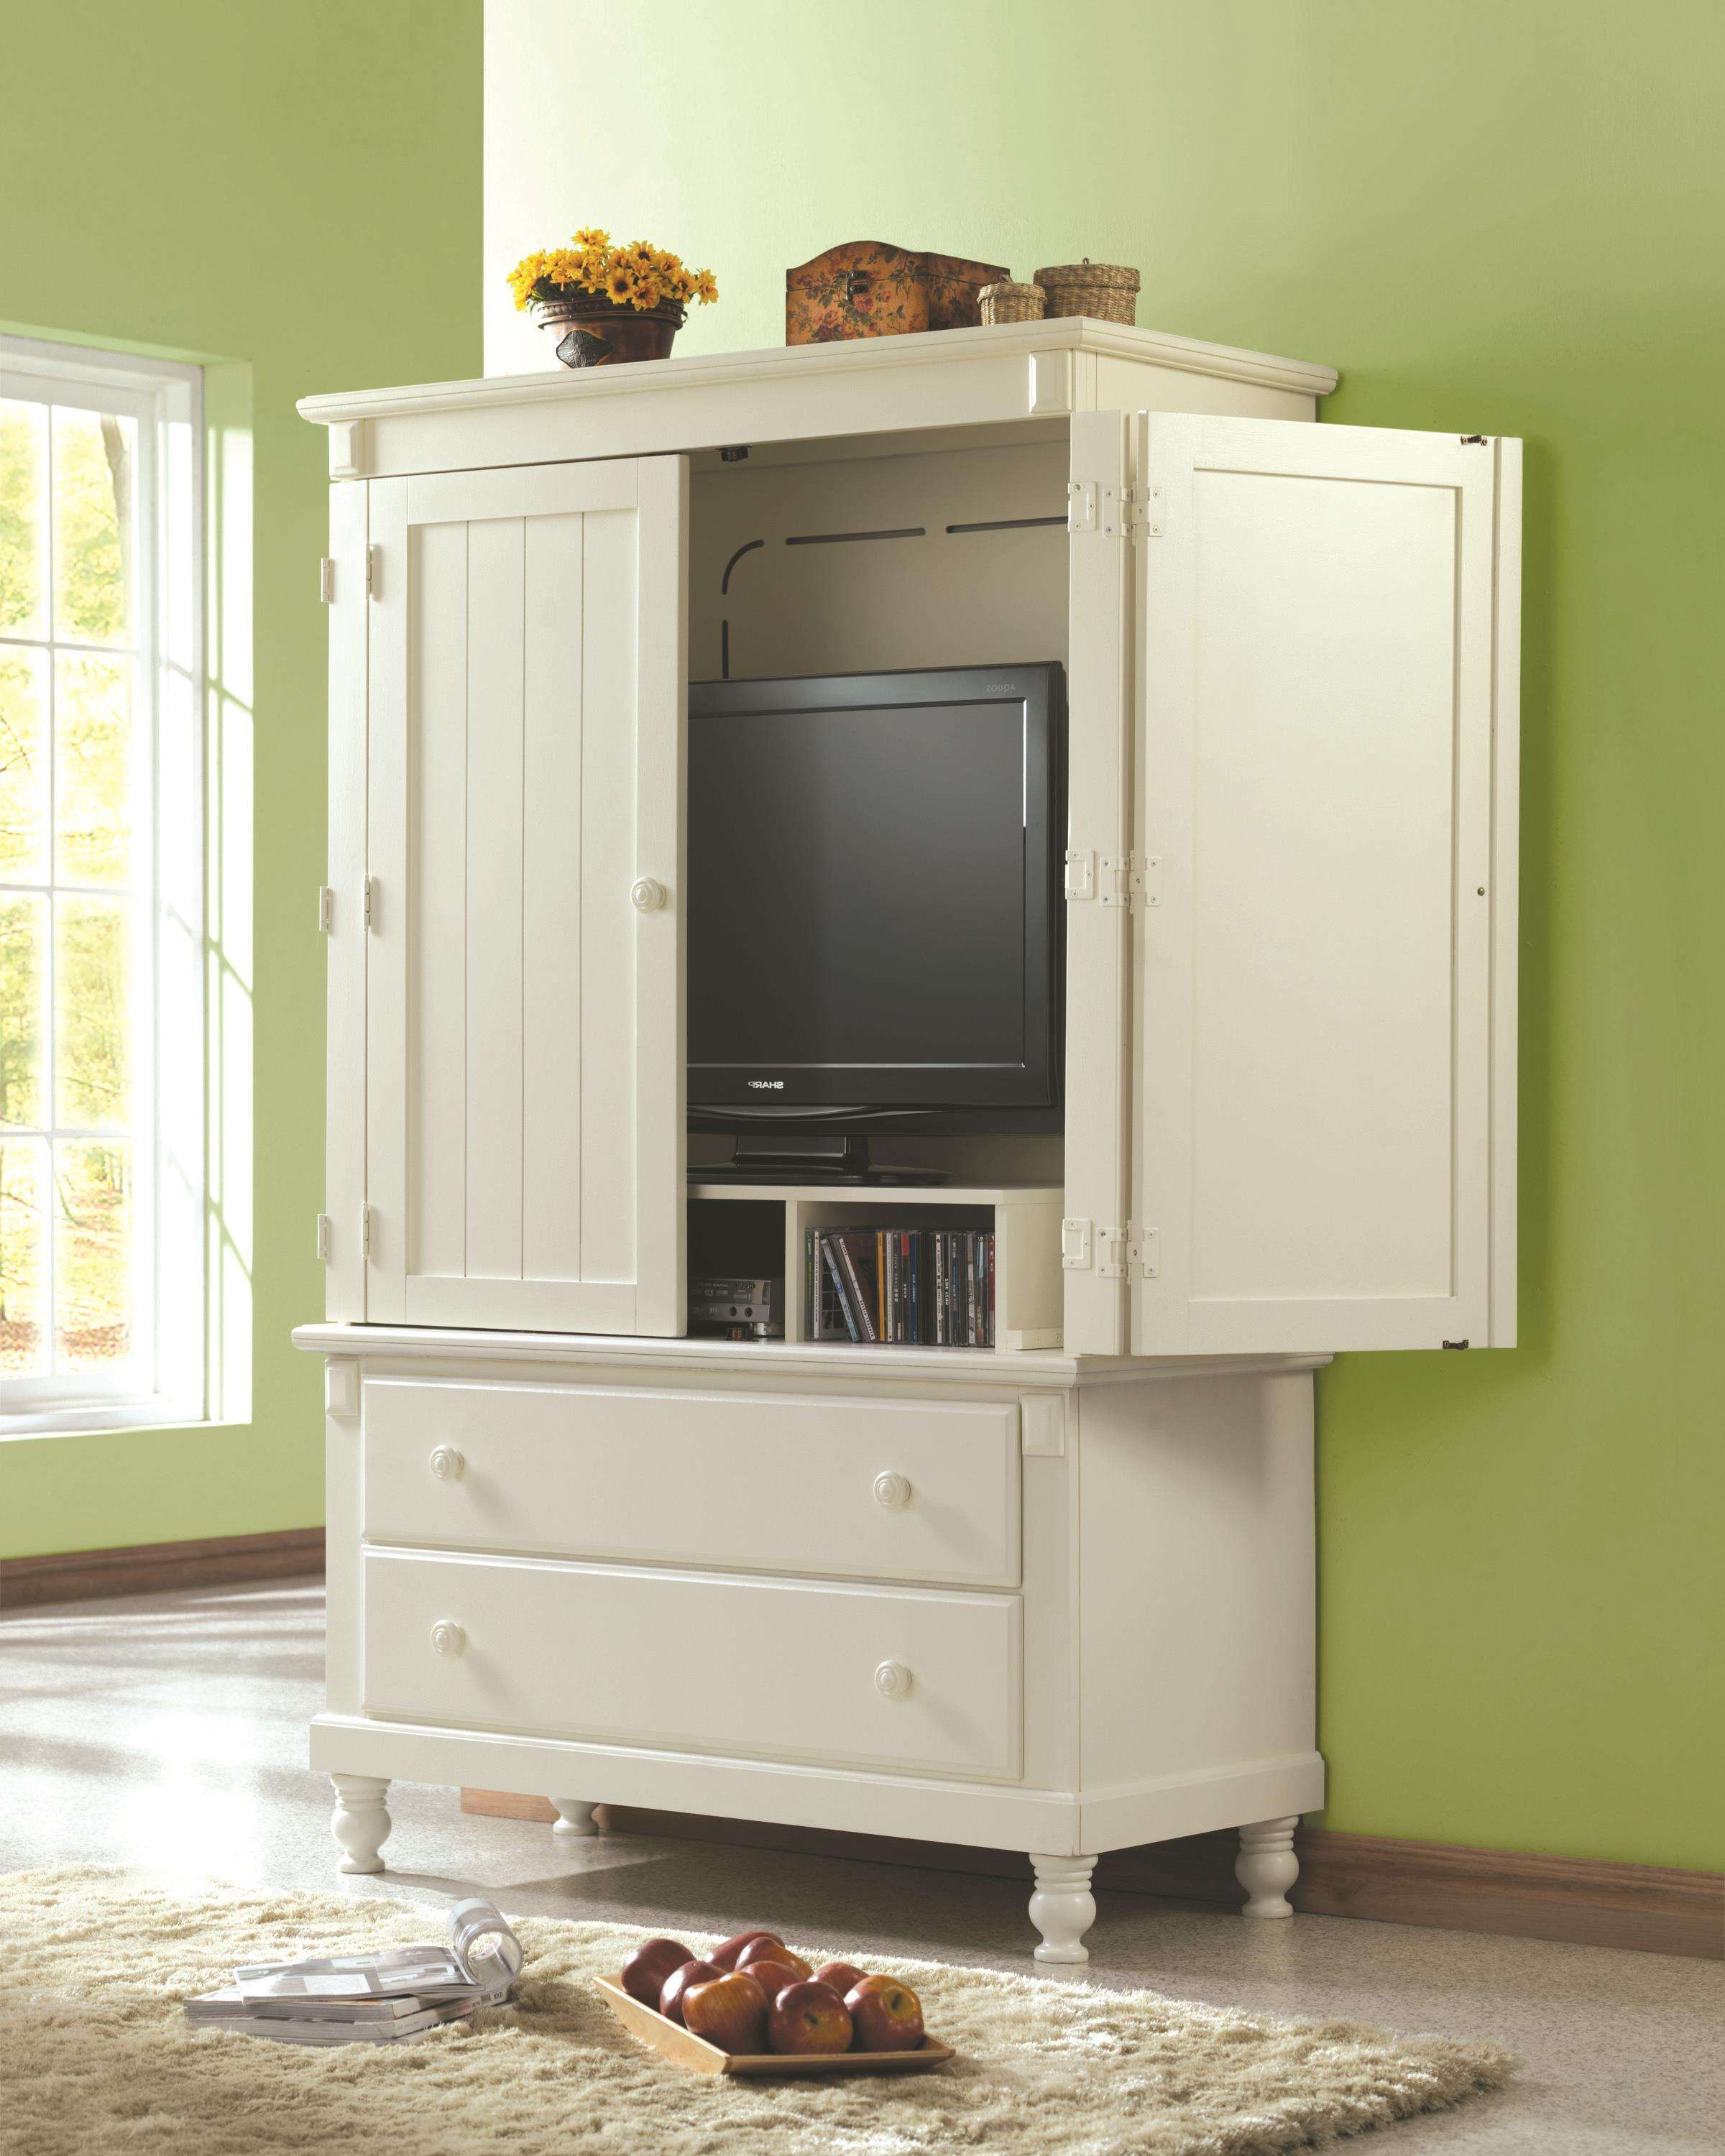 White Wooden Cabinet With Double White Wooden Door Having White Regarding Enclosed Tv Cabinets With Doors (View 20 of 20)